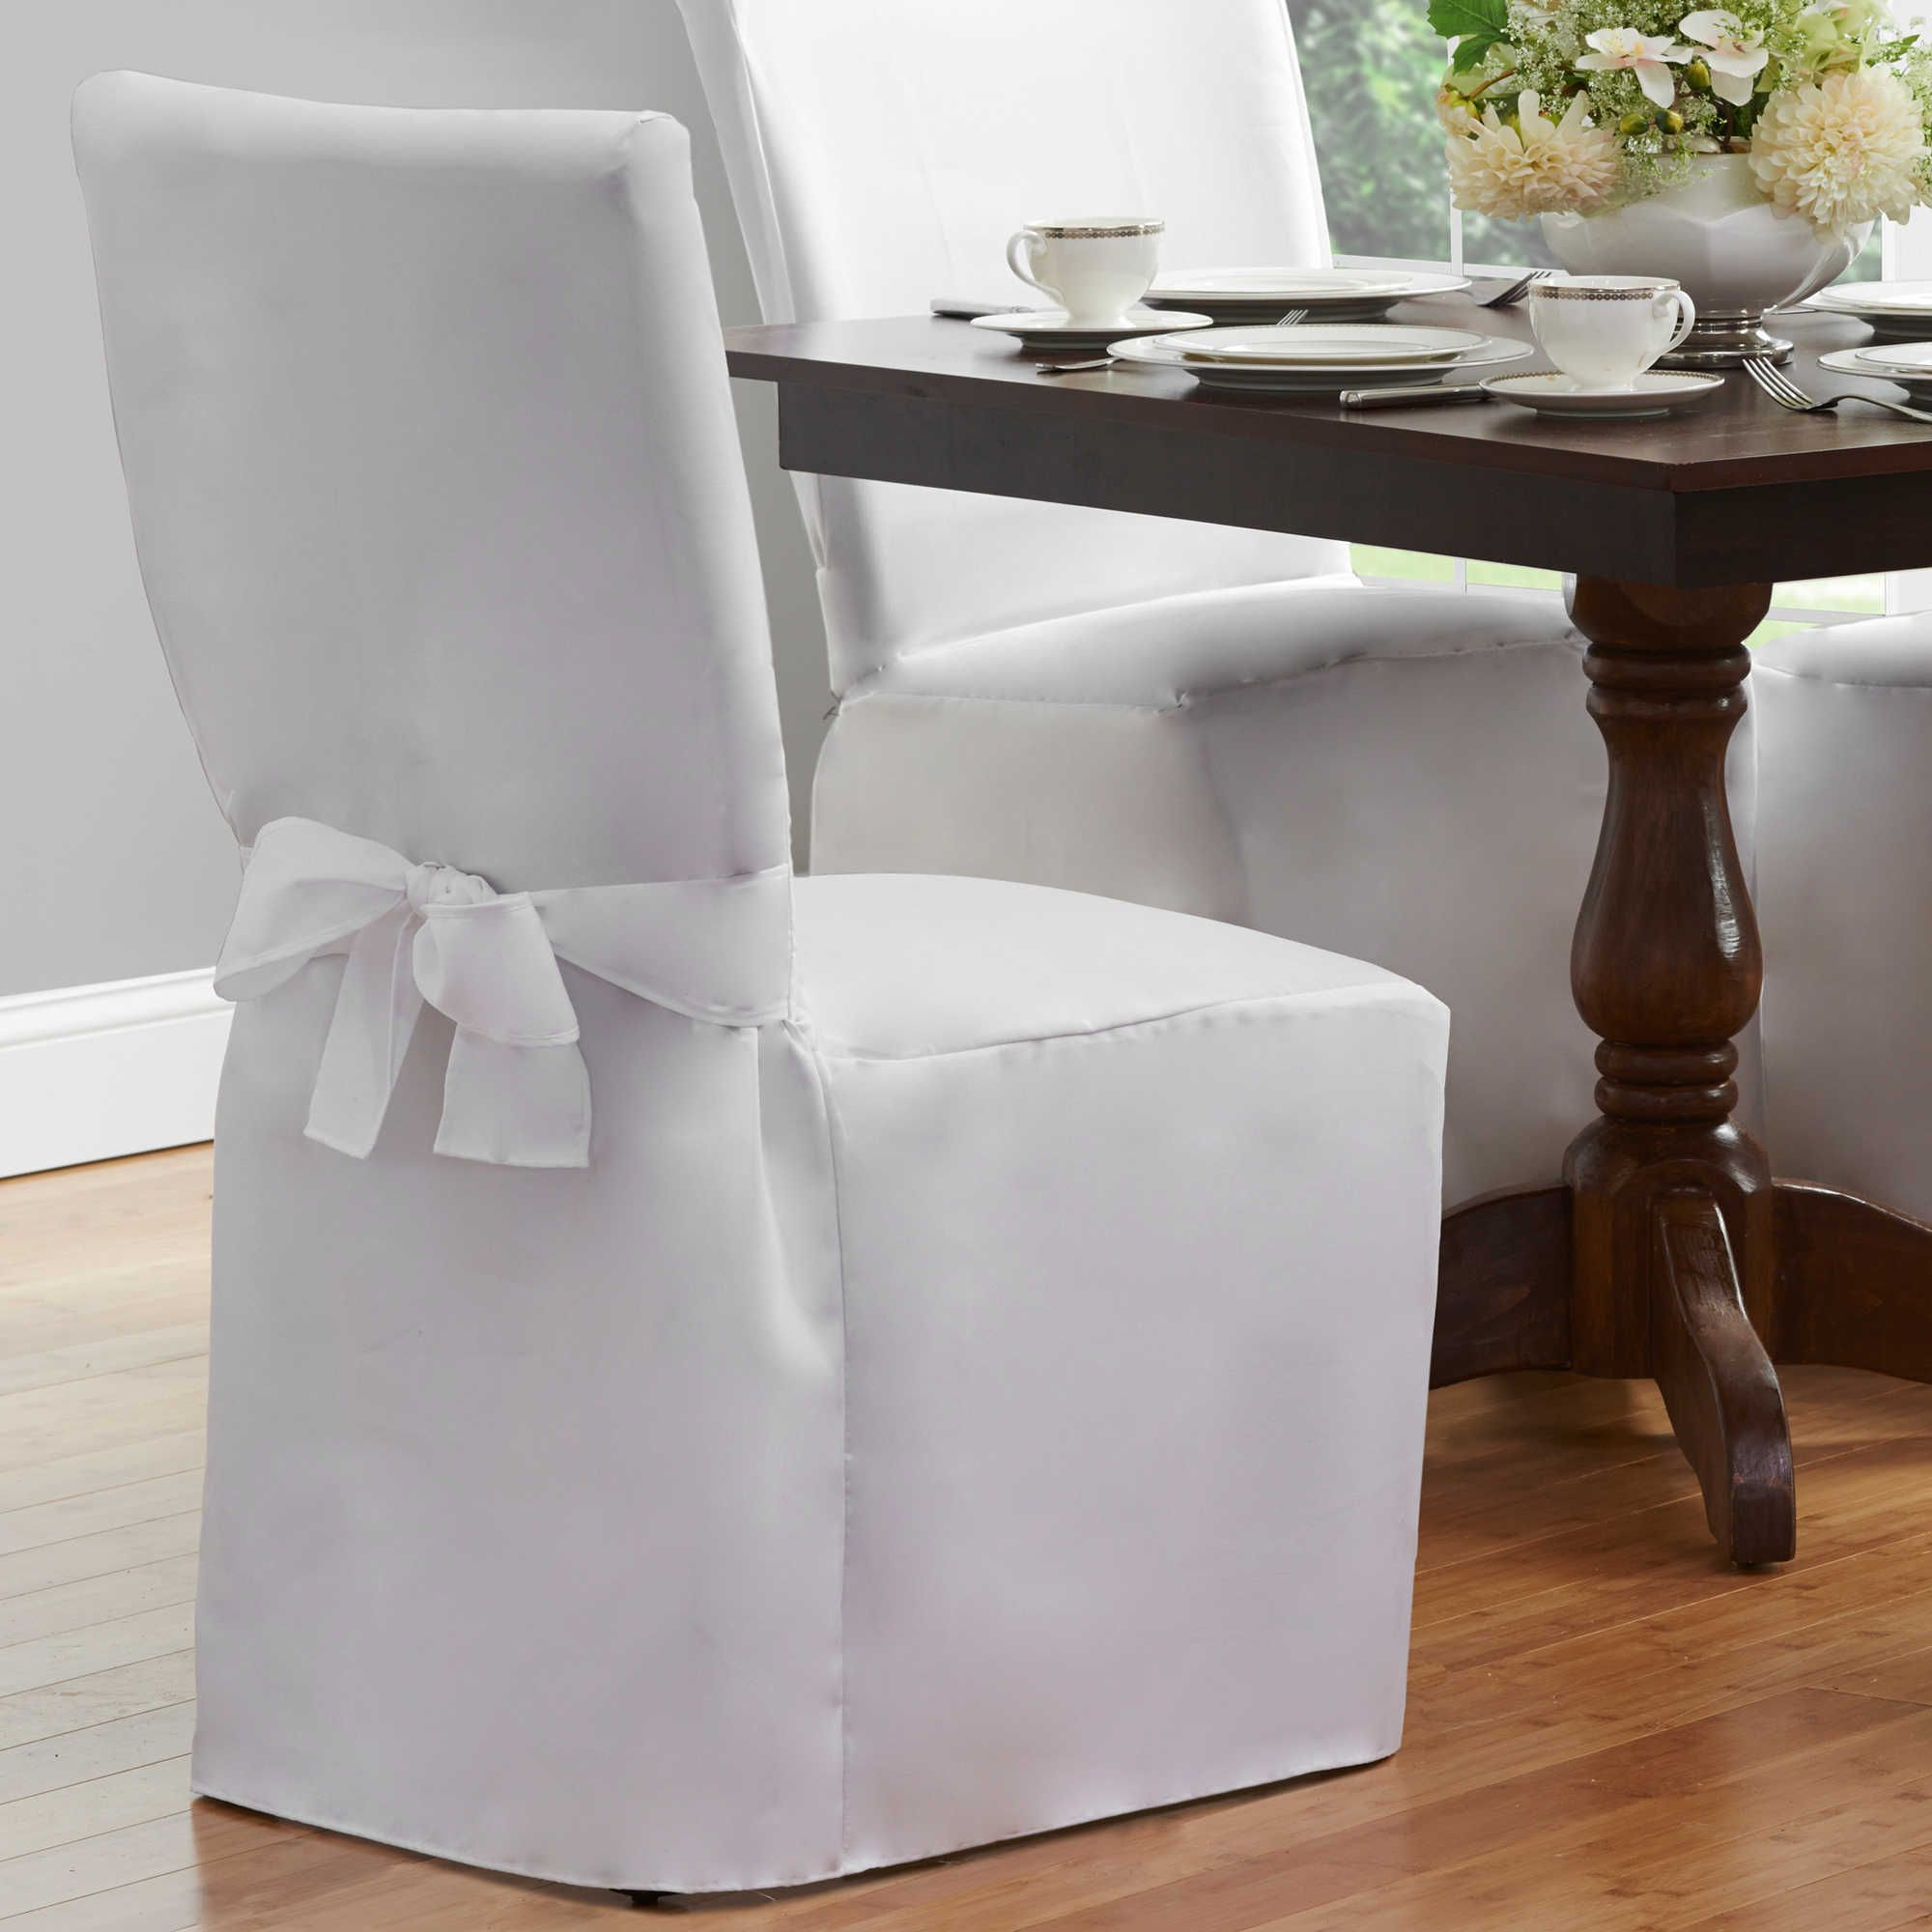 Dining Room Chair Cover in White Dining room chair